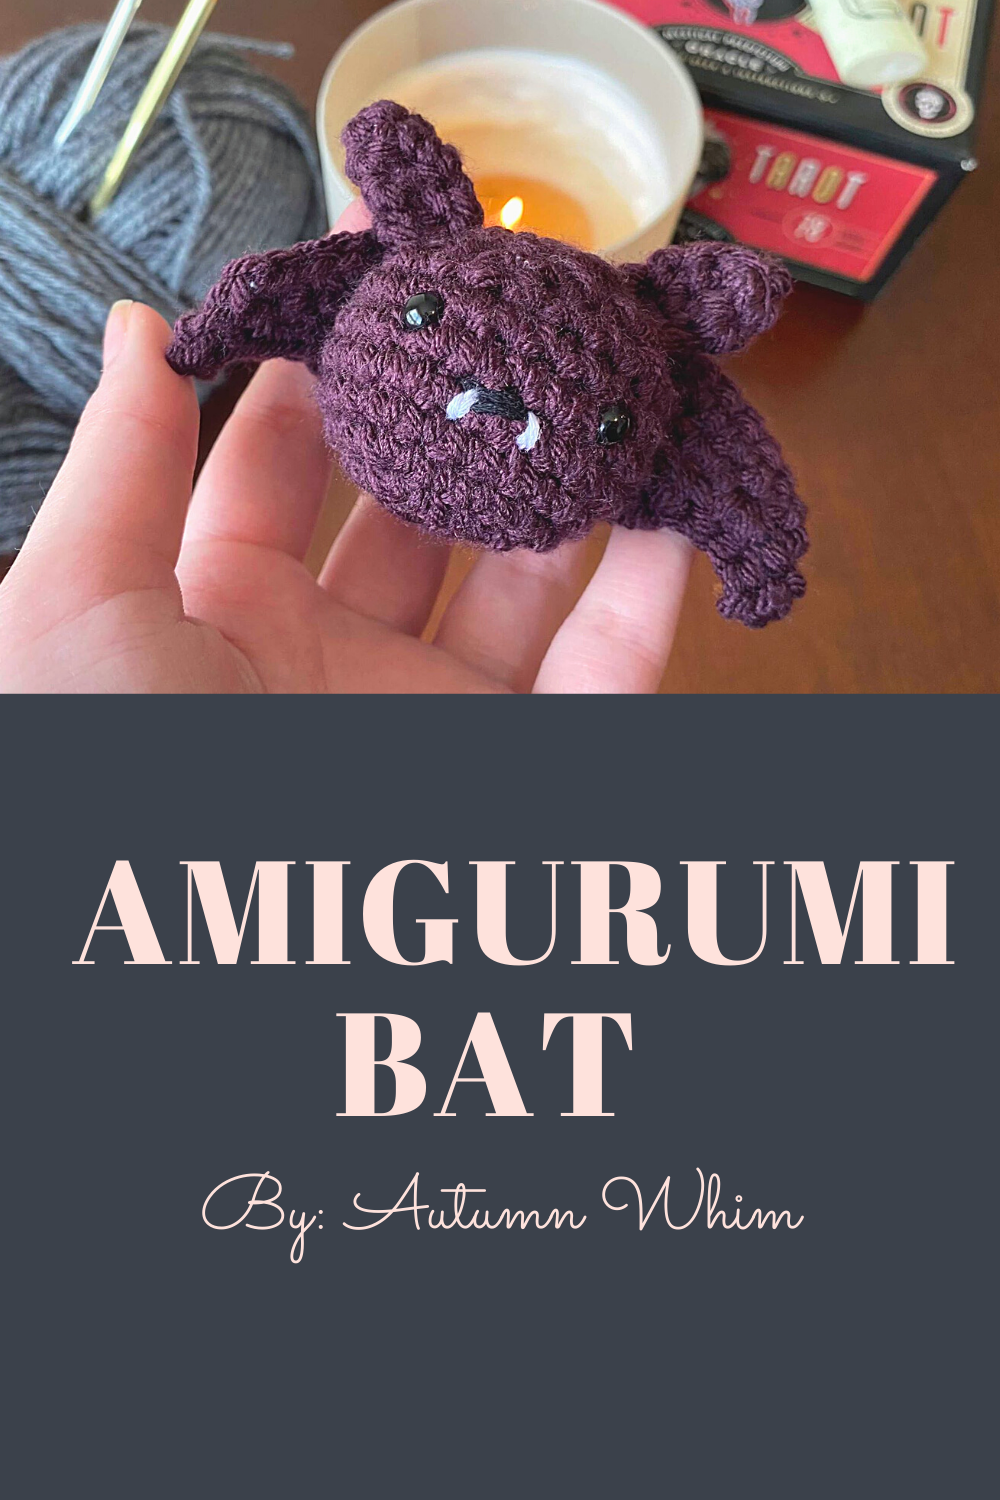 Fall designs just launched on my Etsy shop Autumn Whim! This adorable bat is perfect for decorating for Fall! Check them out in my shop now! ✿ #crochet #etsy #etsyshop #smallbusiness #smallbusinessowner #shopsmall #handmade #handmadehomedecor #amigurumi #amigurumitoy #handmadecrochet #amigurumidoll